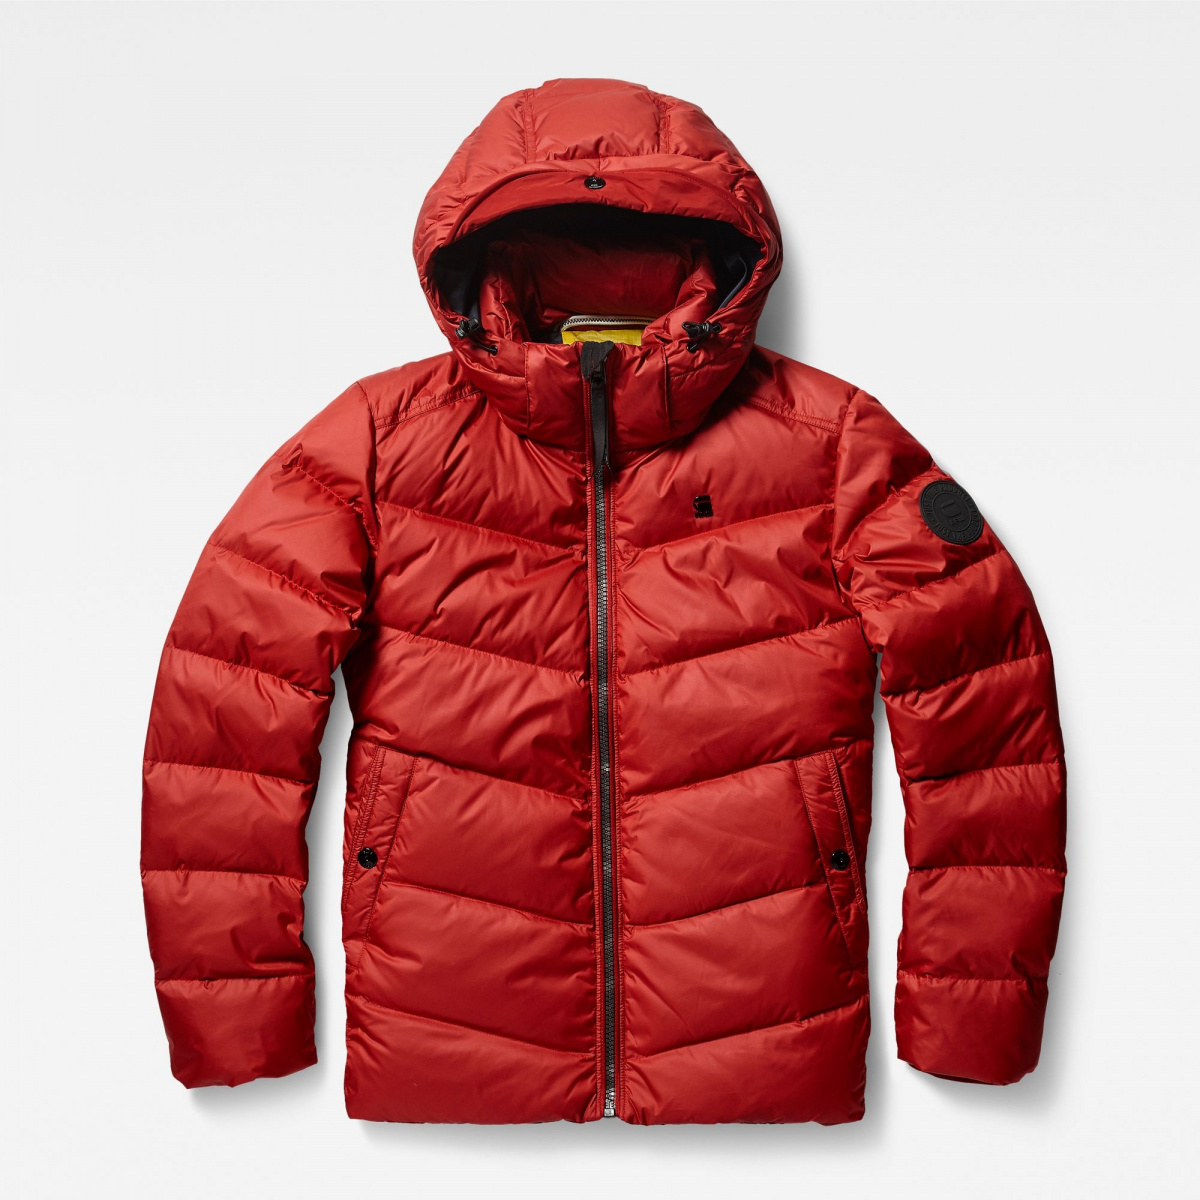 doudoune g star raw homme rouge